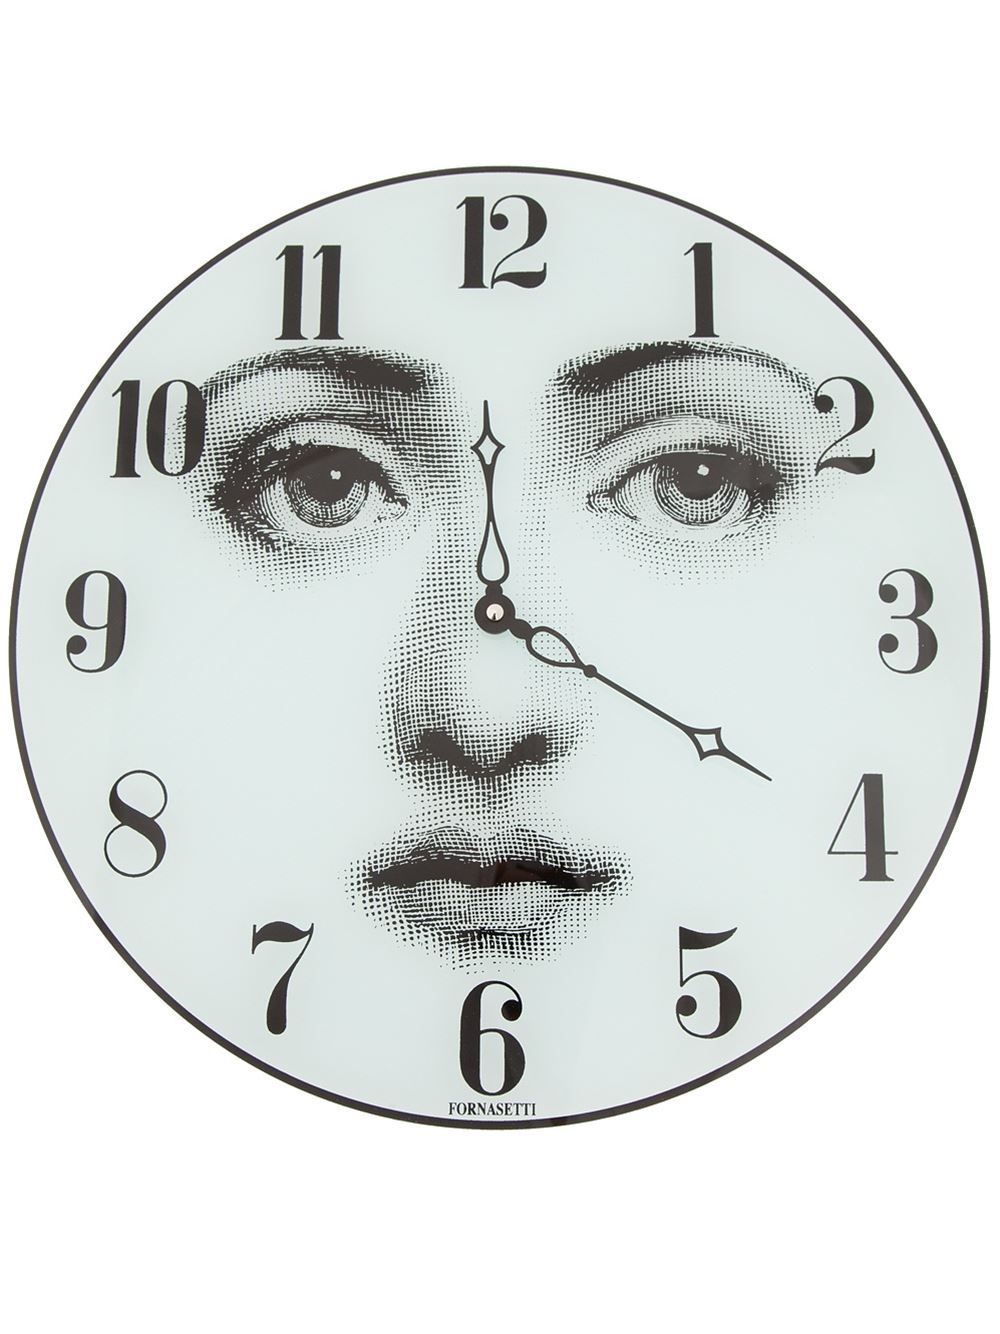 Fornasetti Face Printed Clock Farfetch Printed Clocks Clock Fornasetti